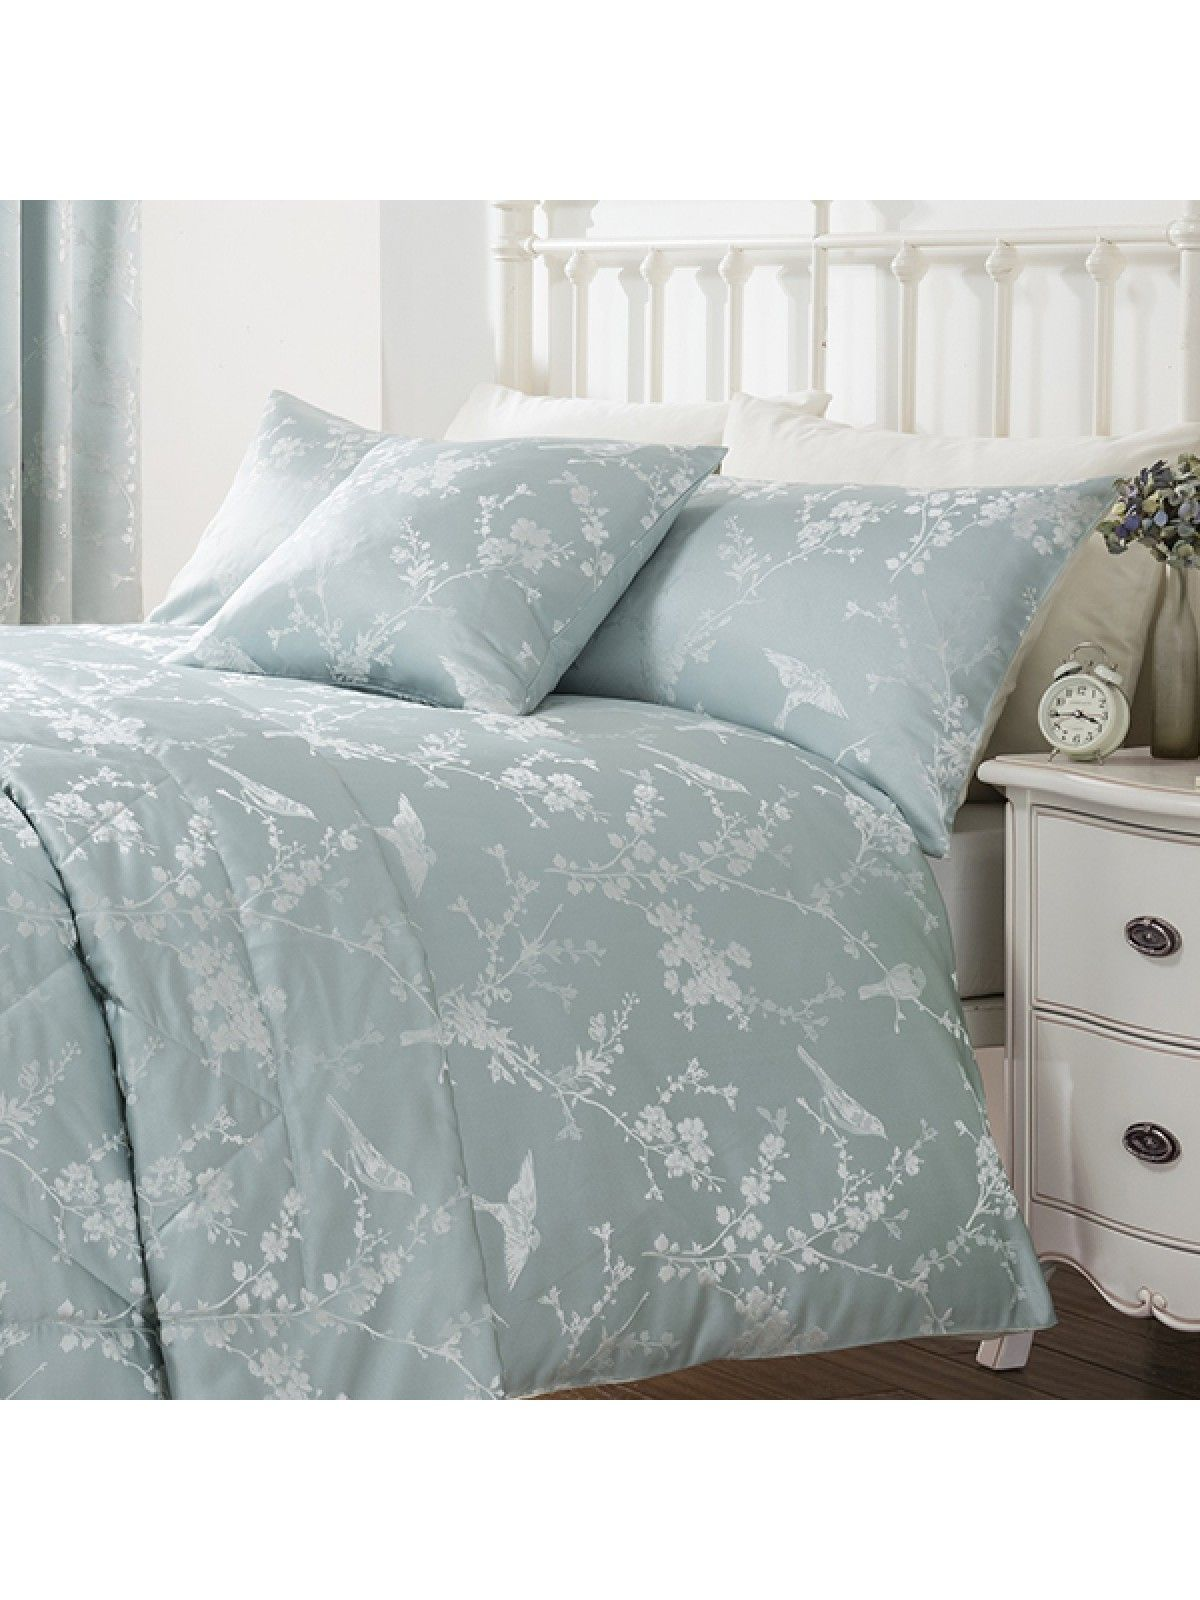 Dress Your Room In Understated Elegance With The Finch Jacquard Duvet Set From Our Ponden Home Collection Beautiful Fl And Bird Design On A Cool